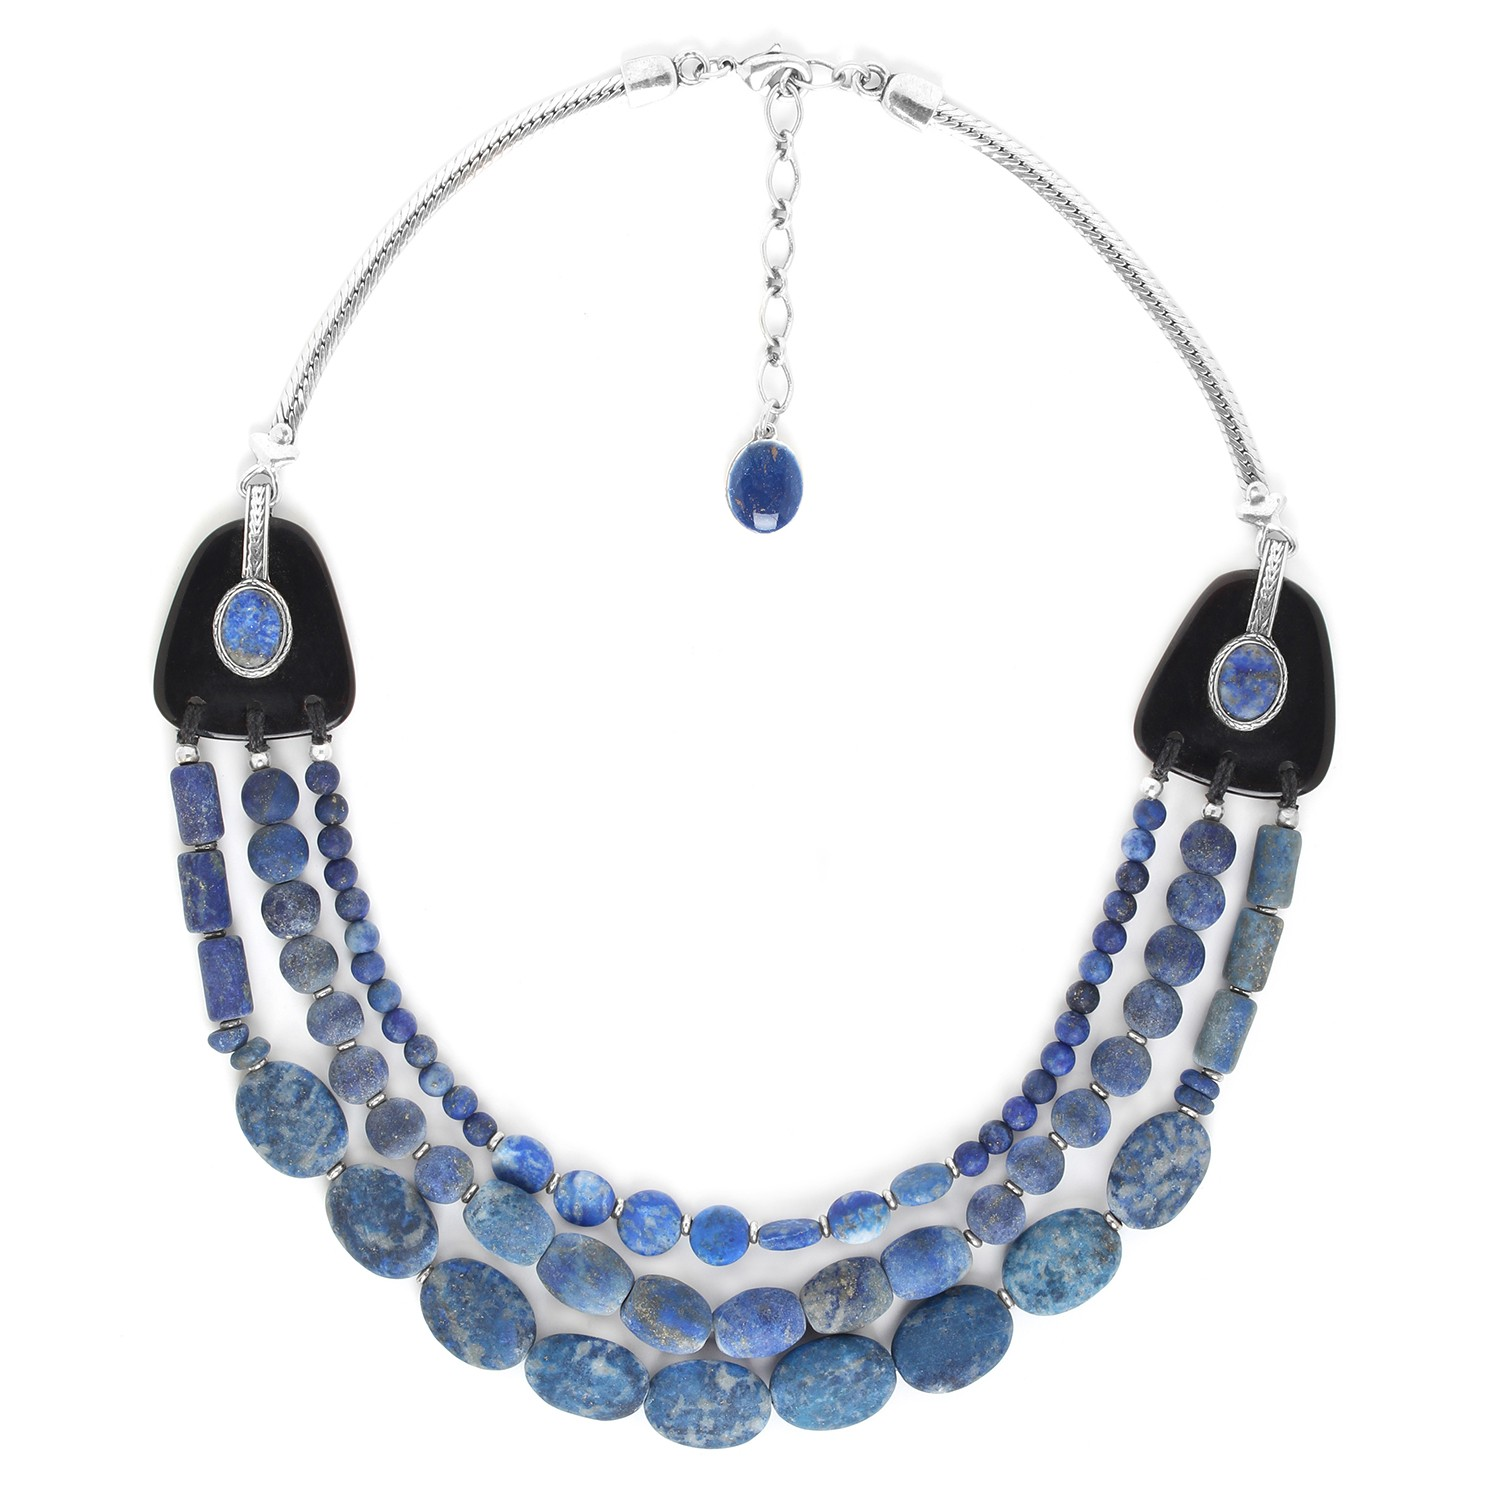 KABYLIE THE necklace